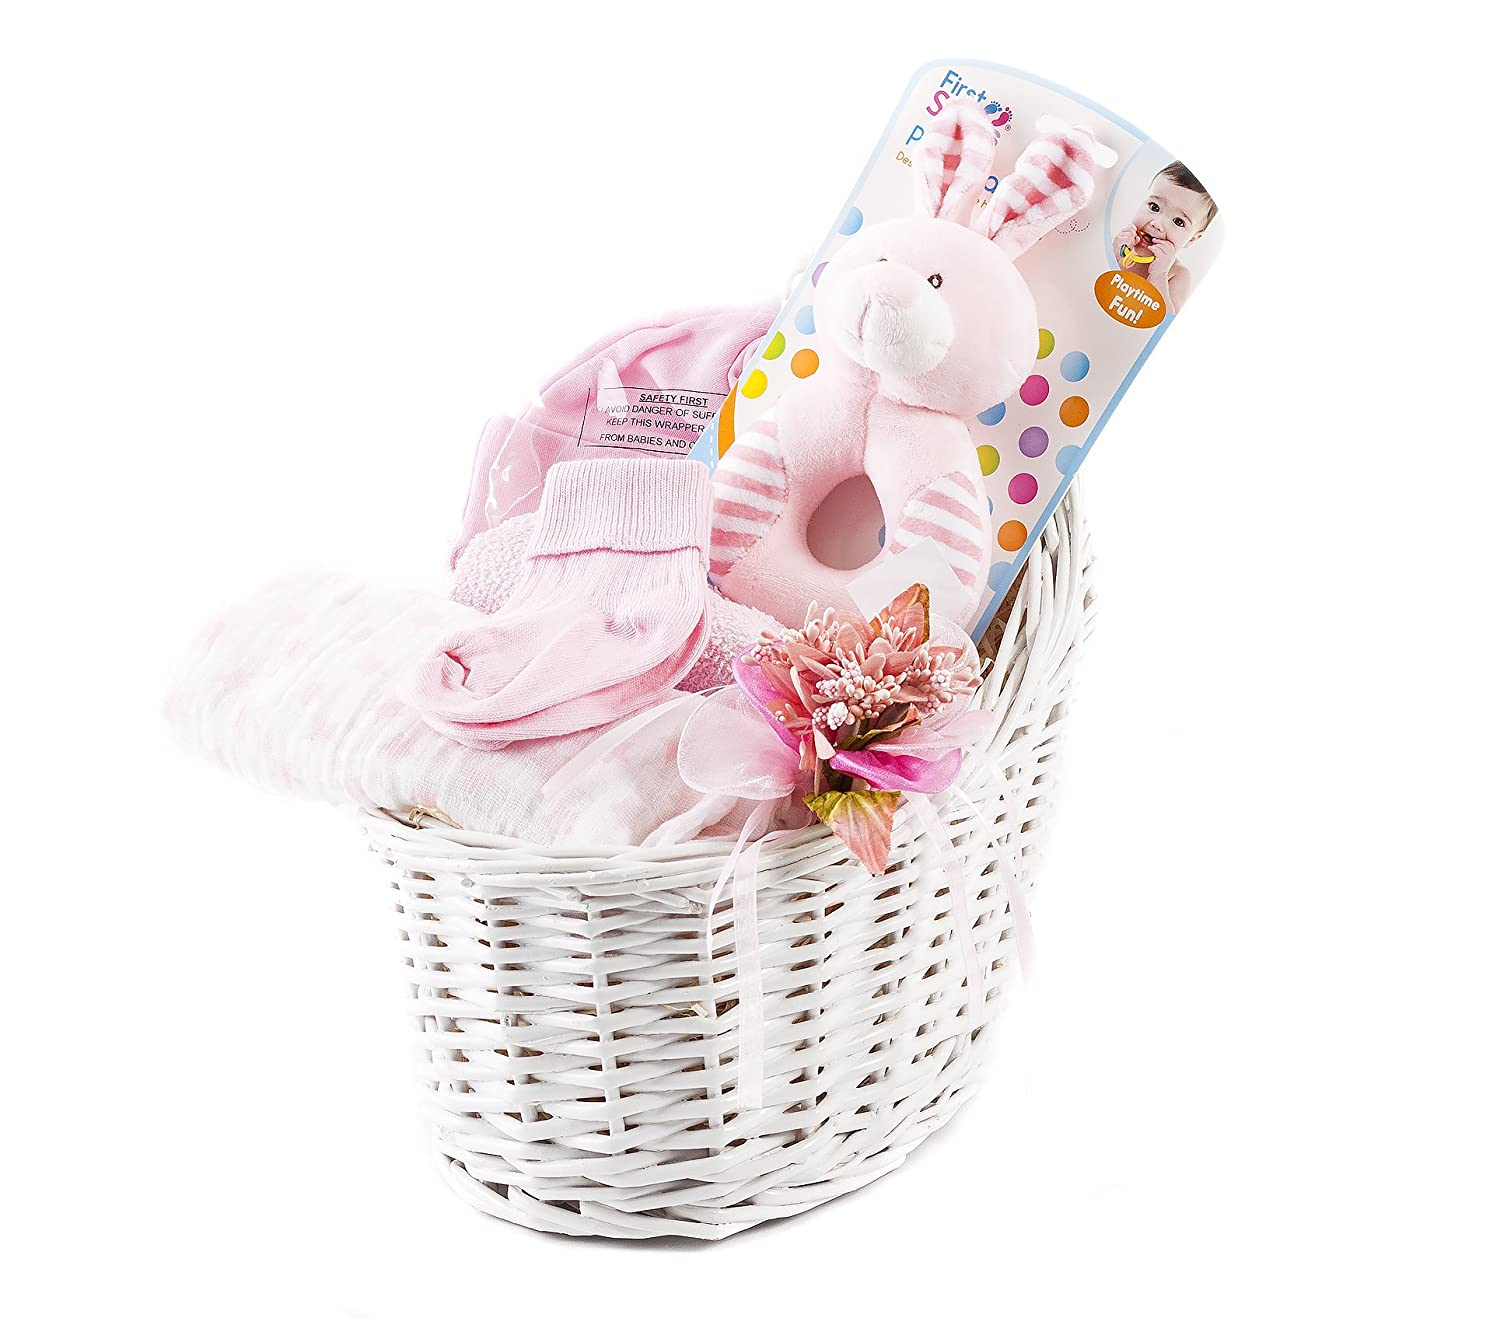 Wickers Just For Baby Hamper - GIRL   Wickers Gift Baskets